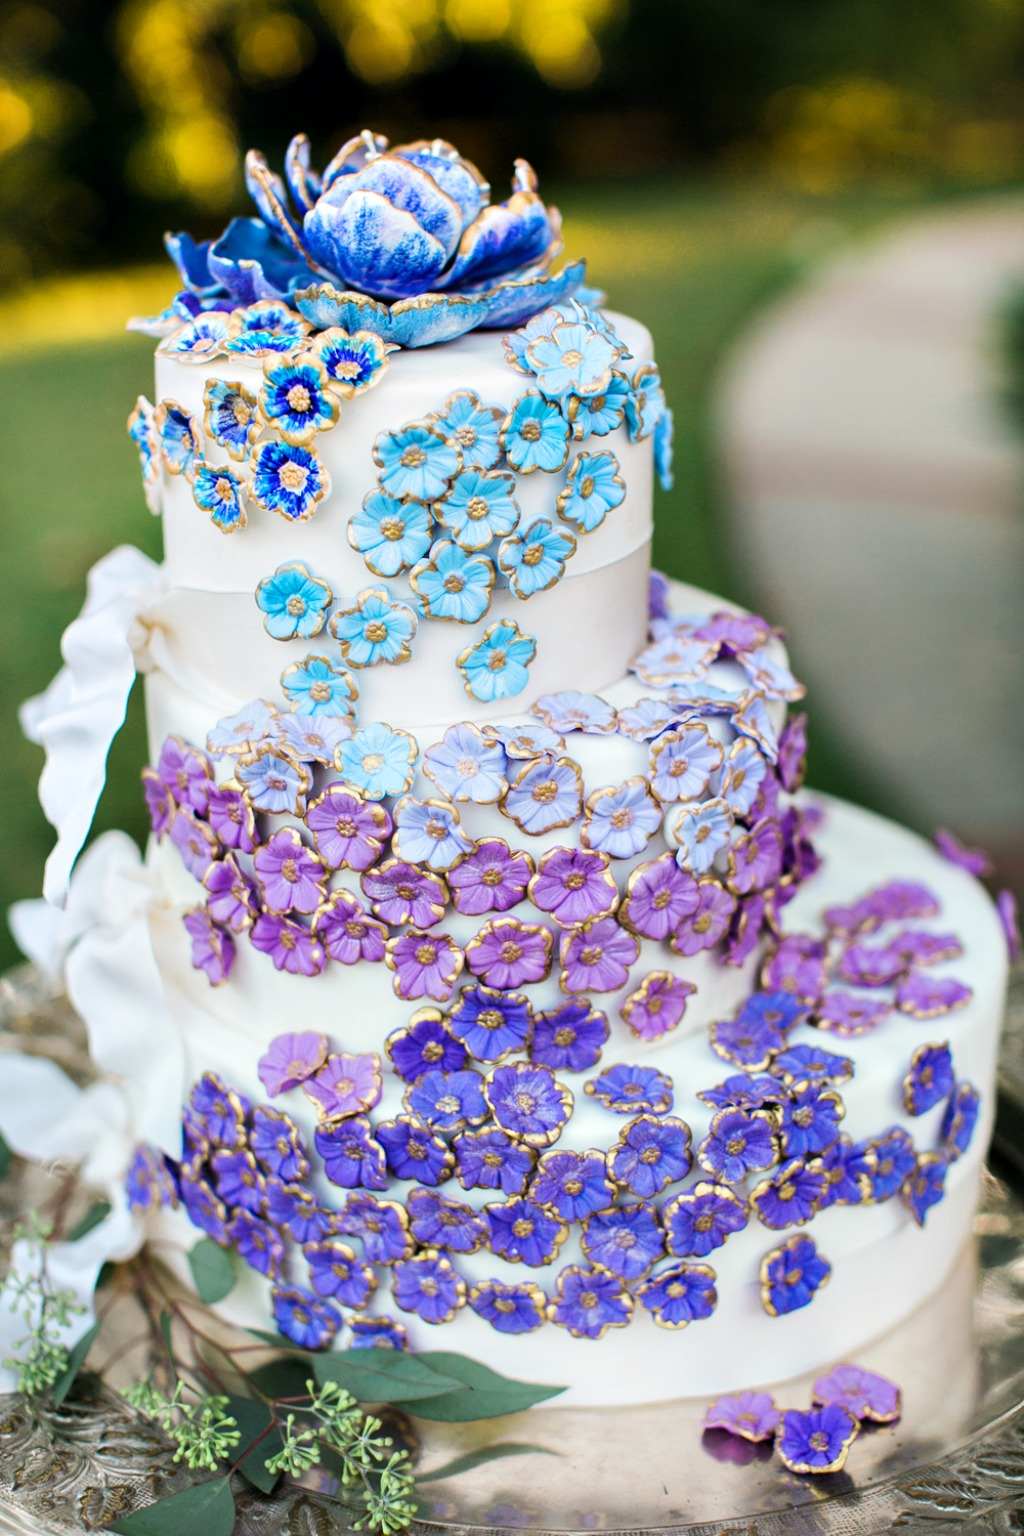 For the couples looking to add some color and uniqueness to their wedding cake, this whimsical three-tier cake has ombré blue to purple